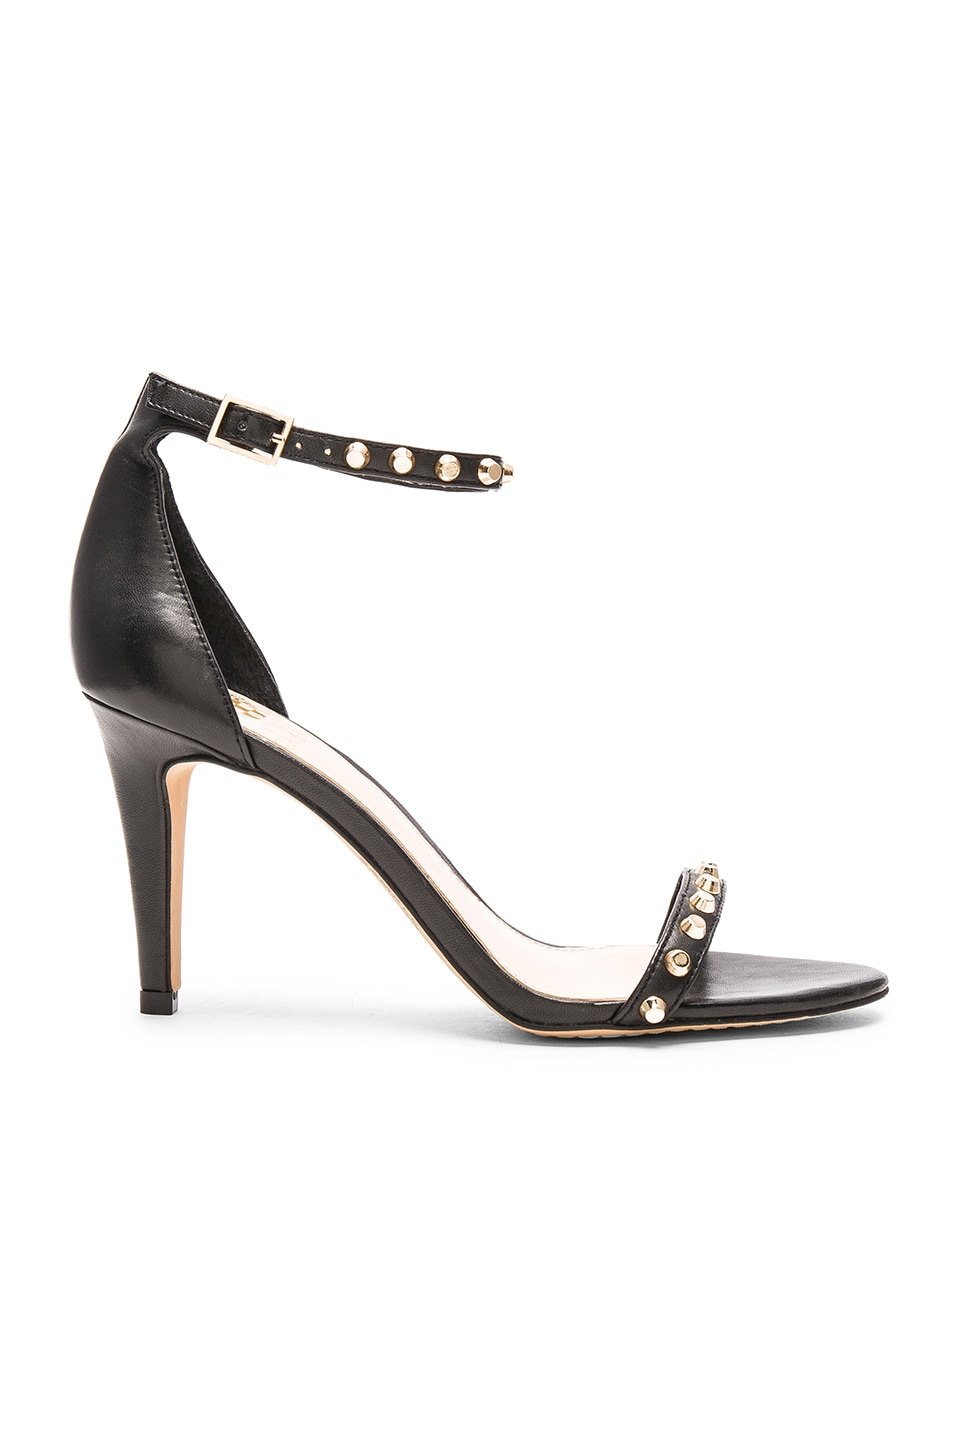 Vince Camuto Cassandy Heel in Black